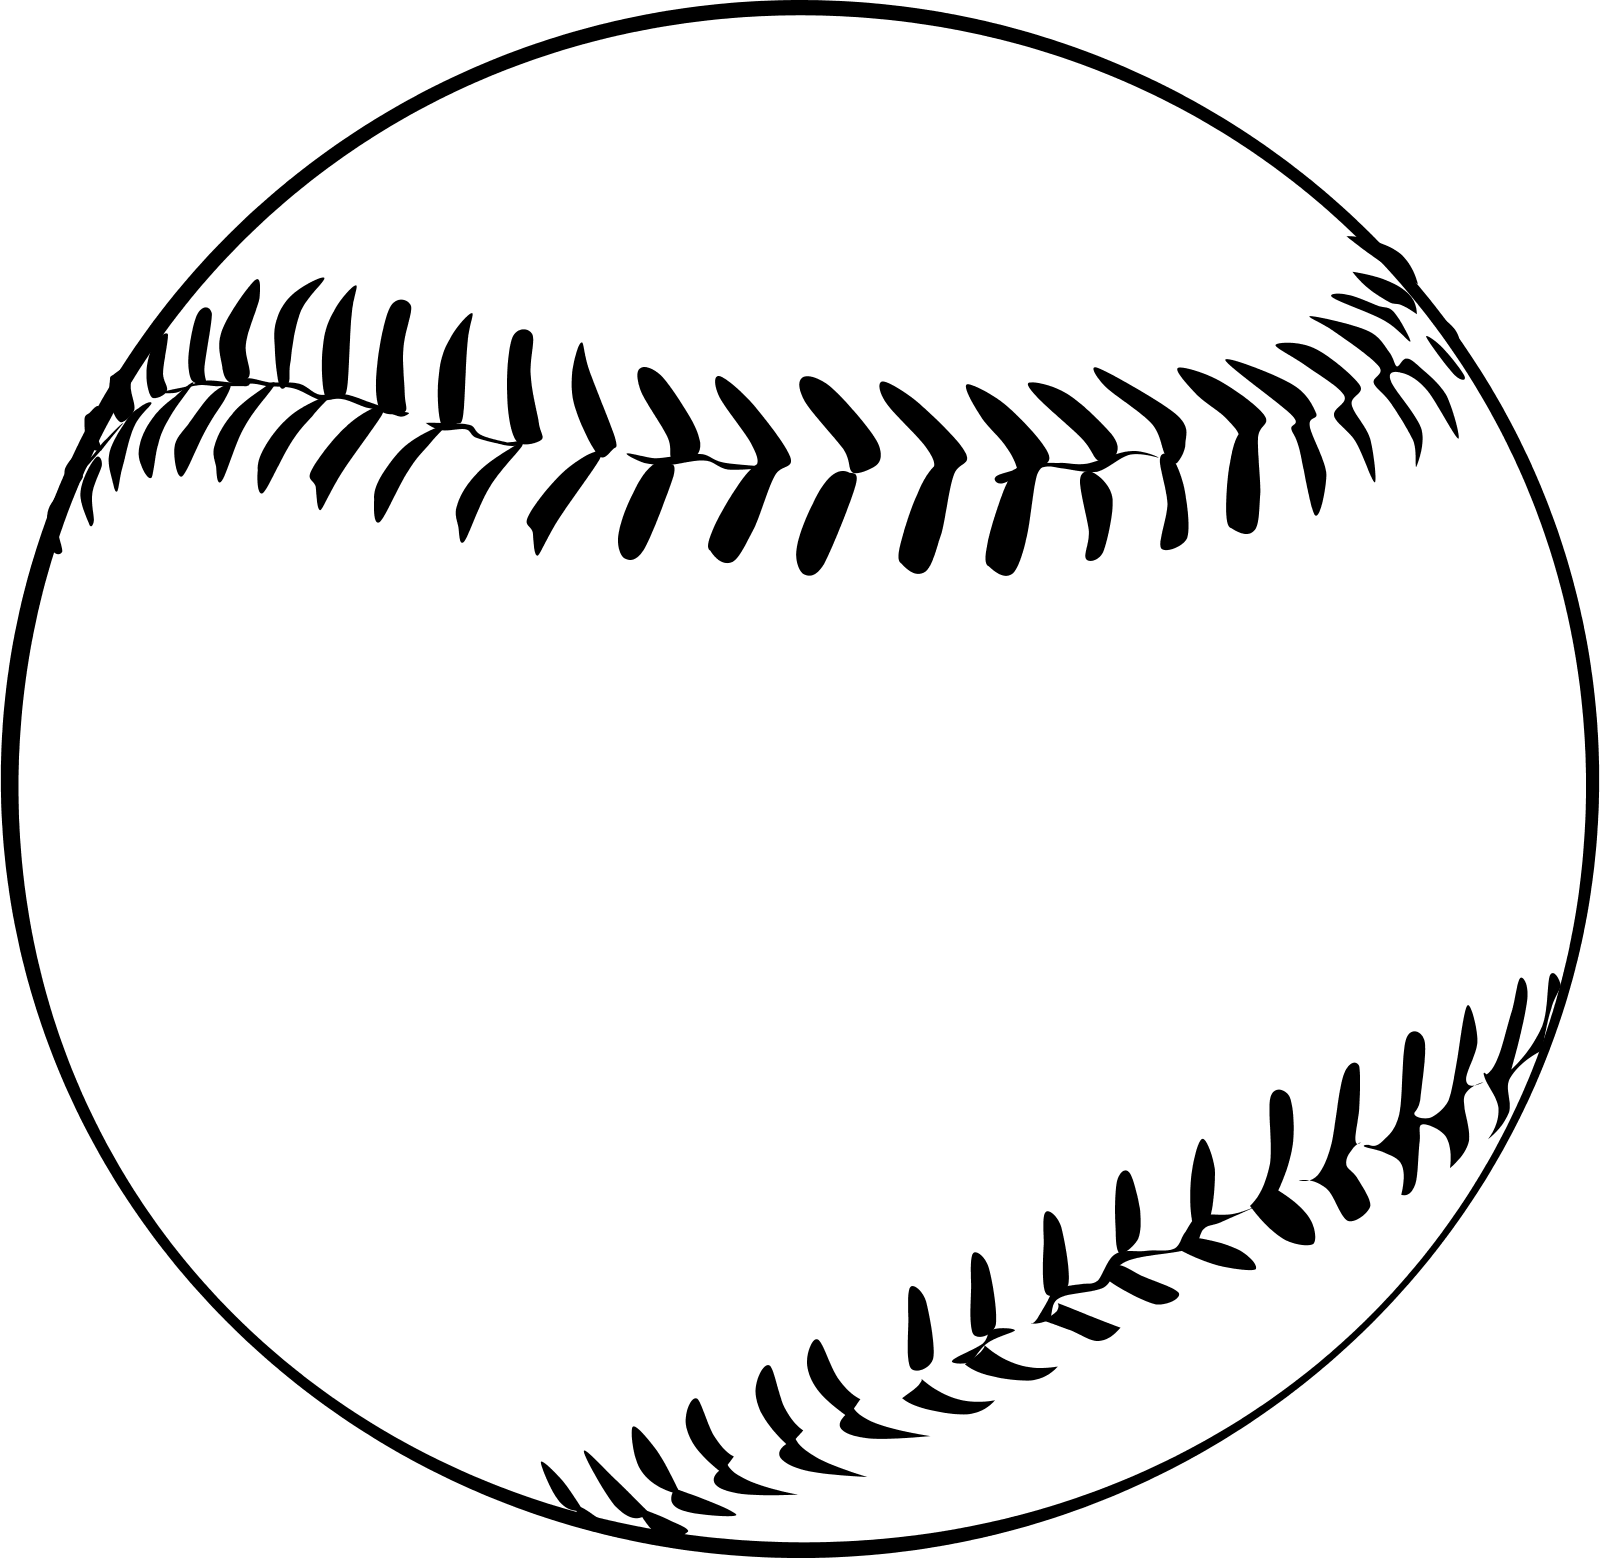 Baseball outline clipart banner baseball-clipart-black-and-white-Baseball.png (1600×1558) BIG ... banner